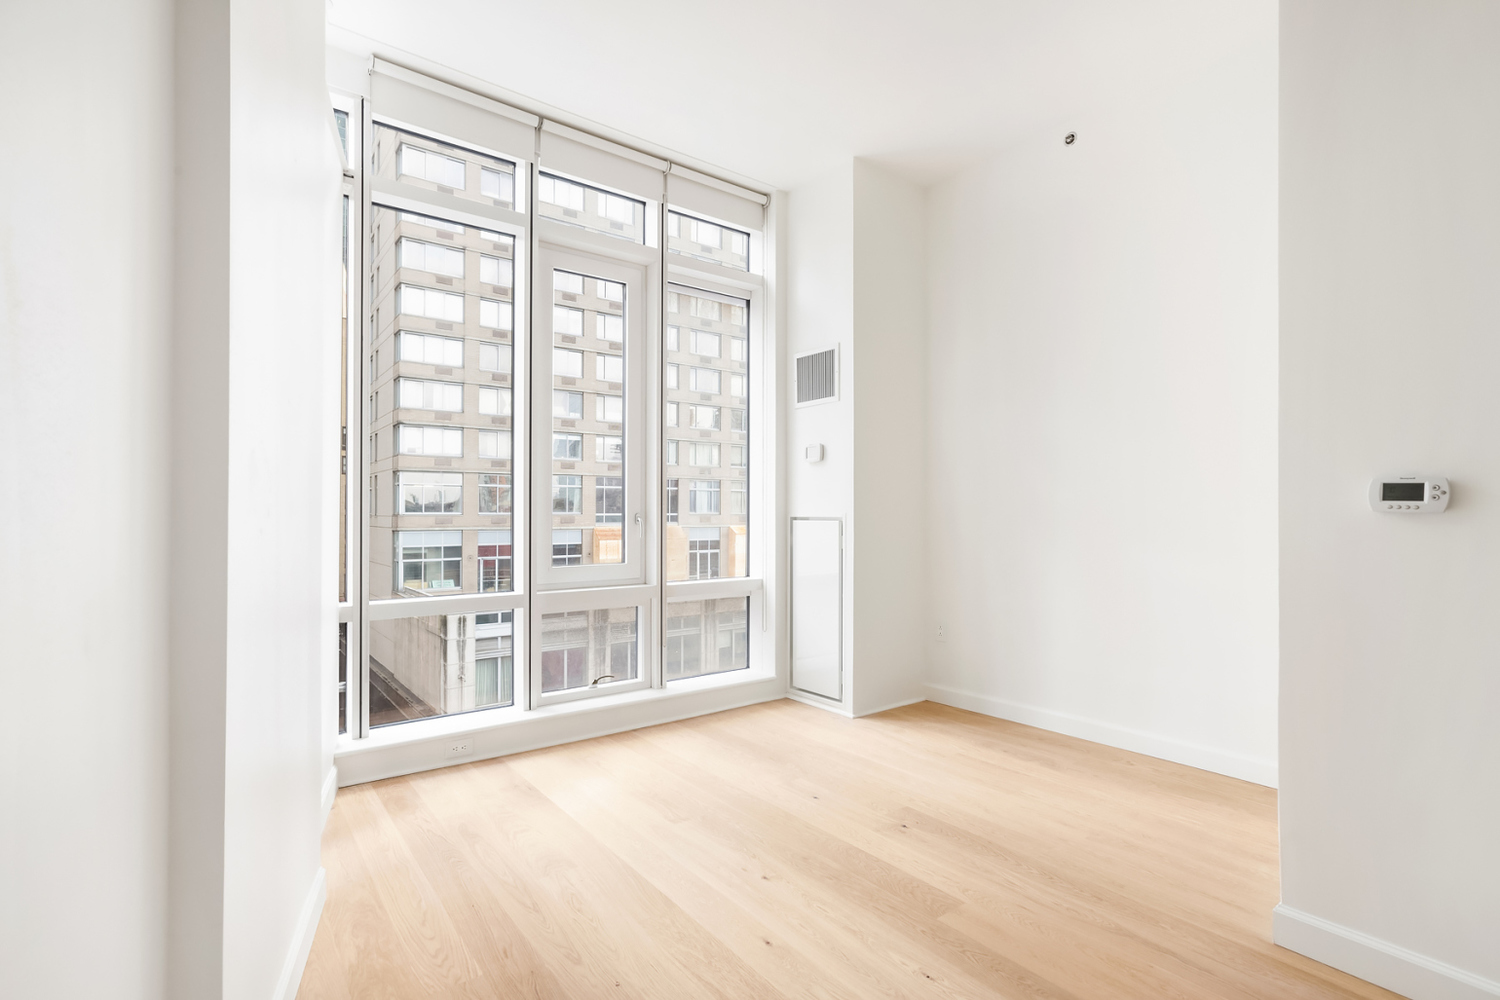 306 West 48th Street, Unit 4D Manhattan, NY 10036